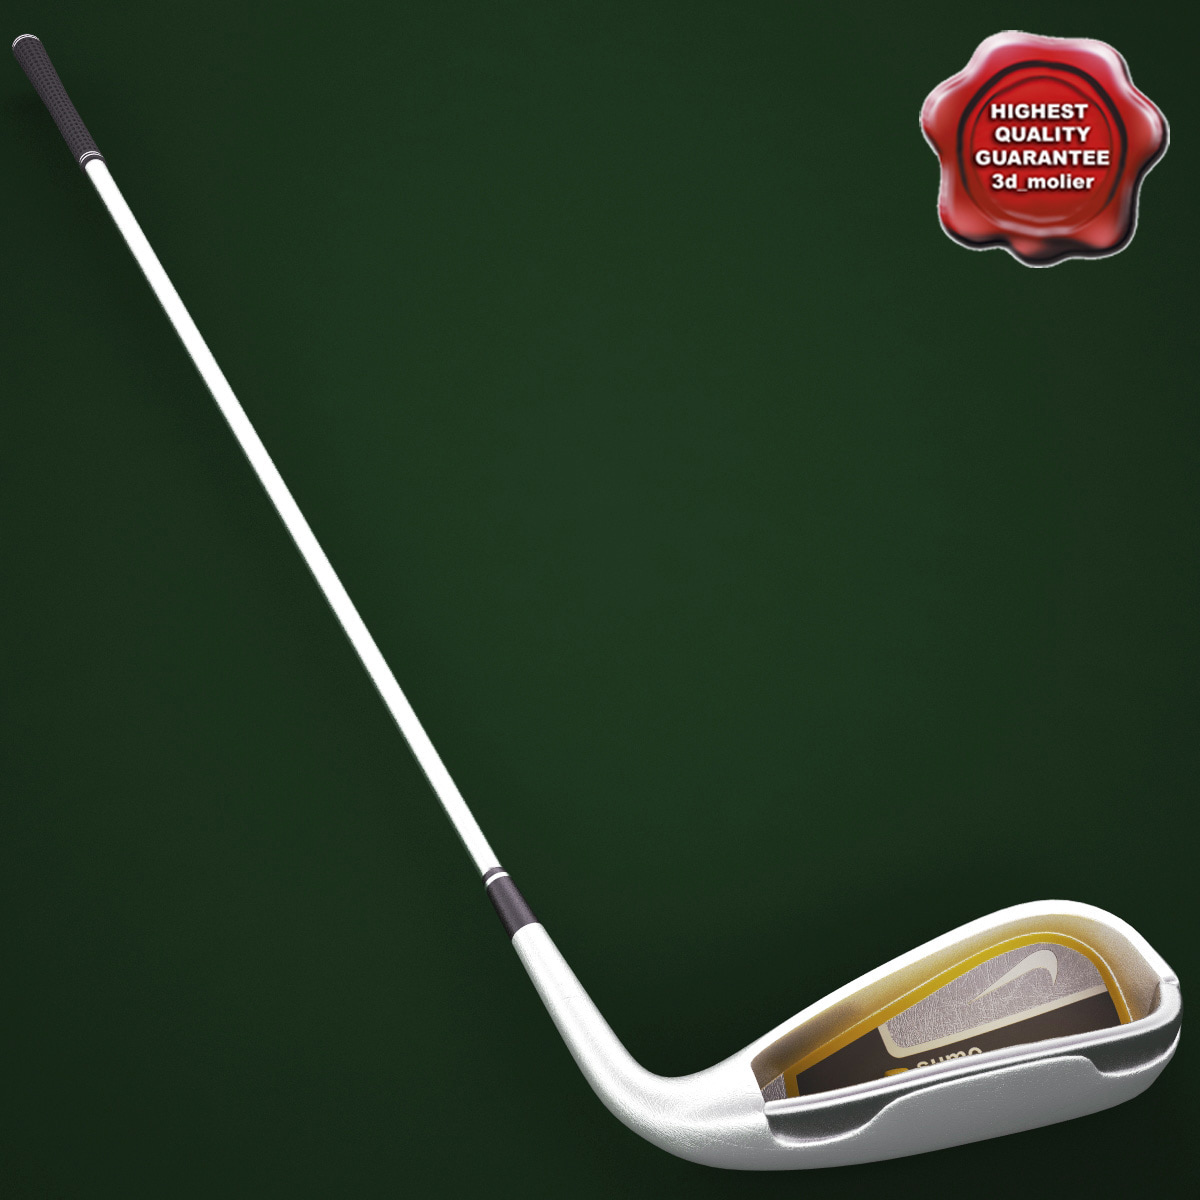 Golf_Nike_SQ_Sumo_Iron_00.jpg